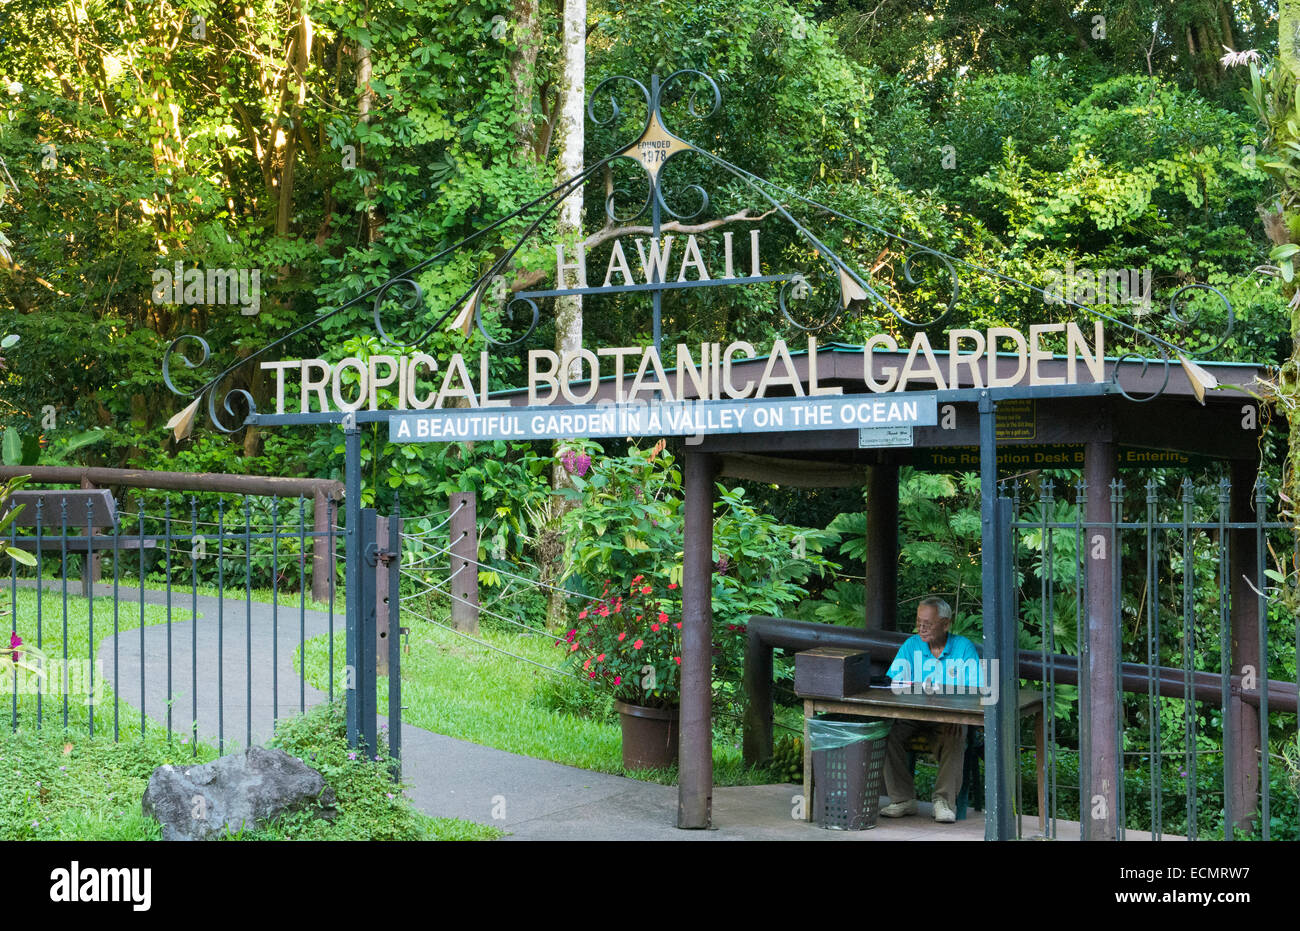 Hilo Hawaii Big Island Hawaii Tropical Botanical Garden  green peaceful from above with sea and waves entrance - Stock Image